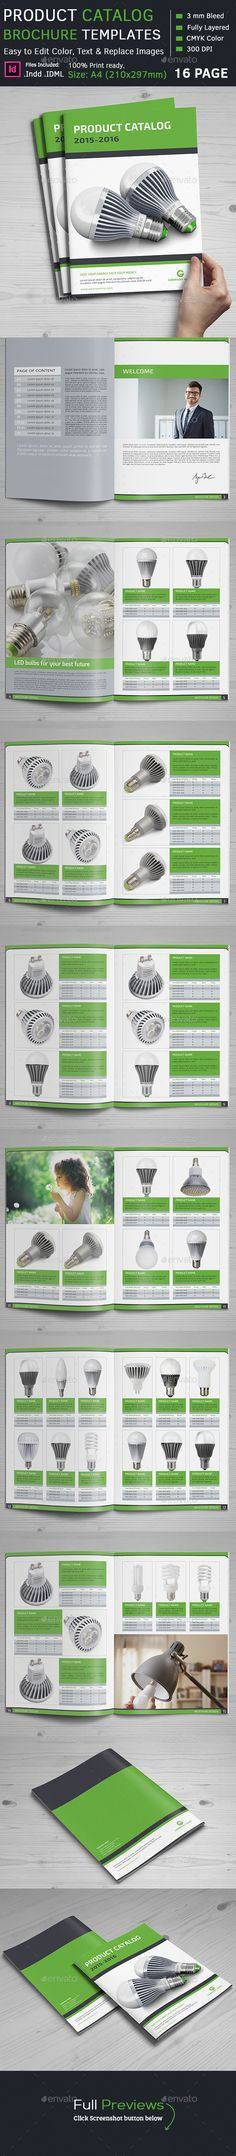 Product Catalog Tempalte #design Download: http://graphicriver.net/item/product-catalog/11630273?ref=ksioks